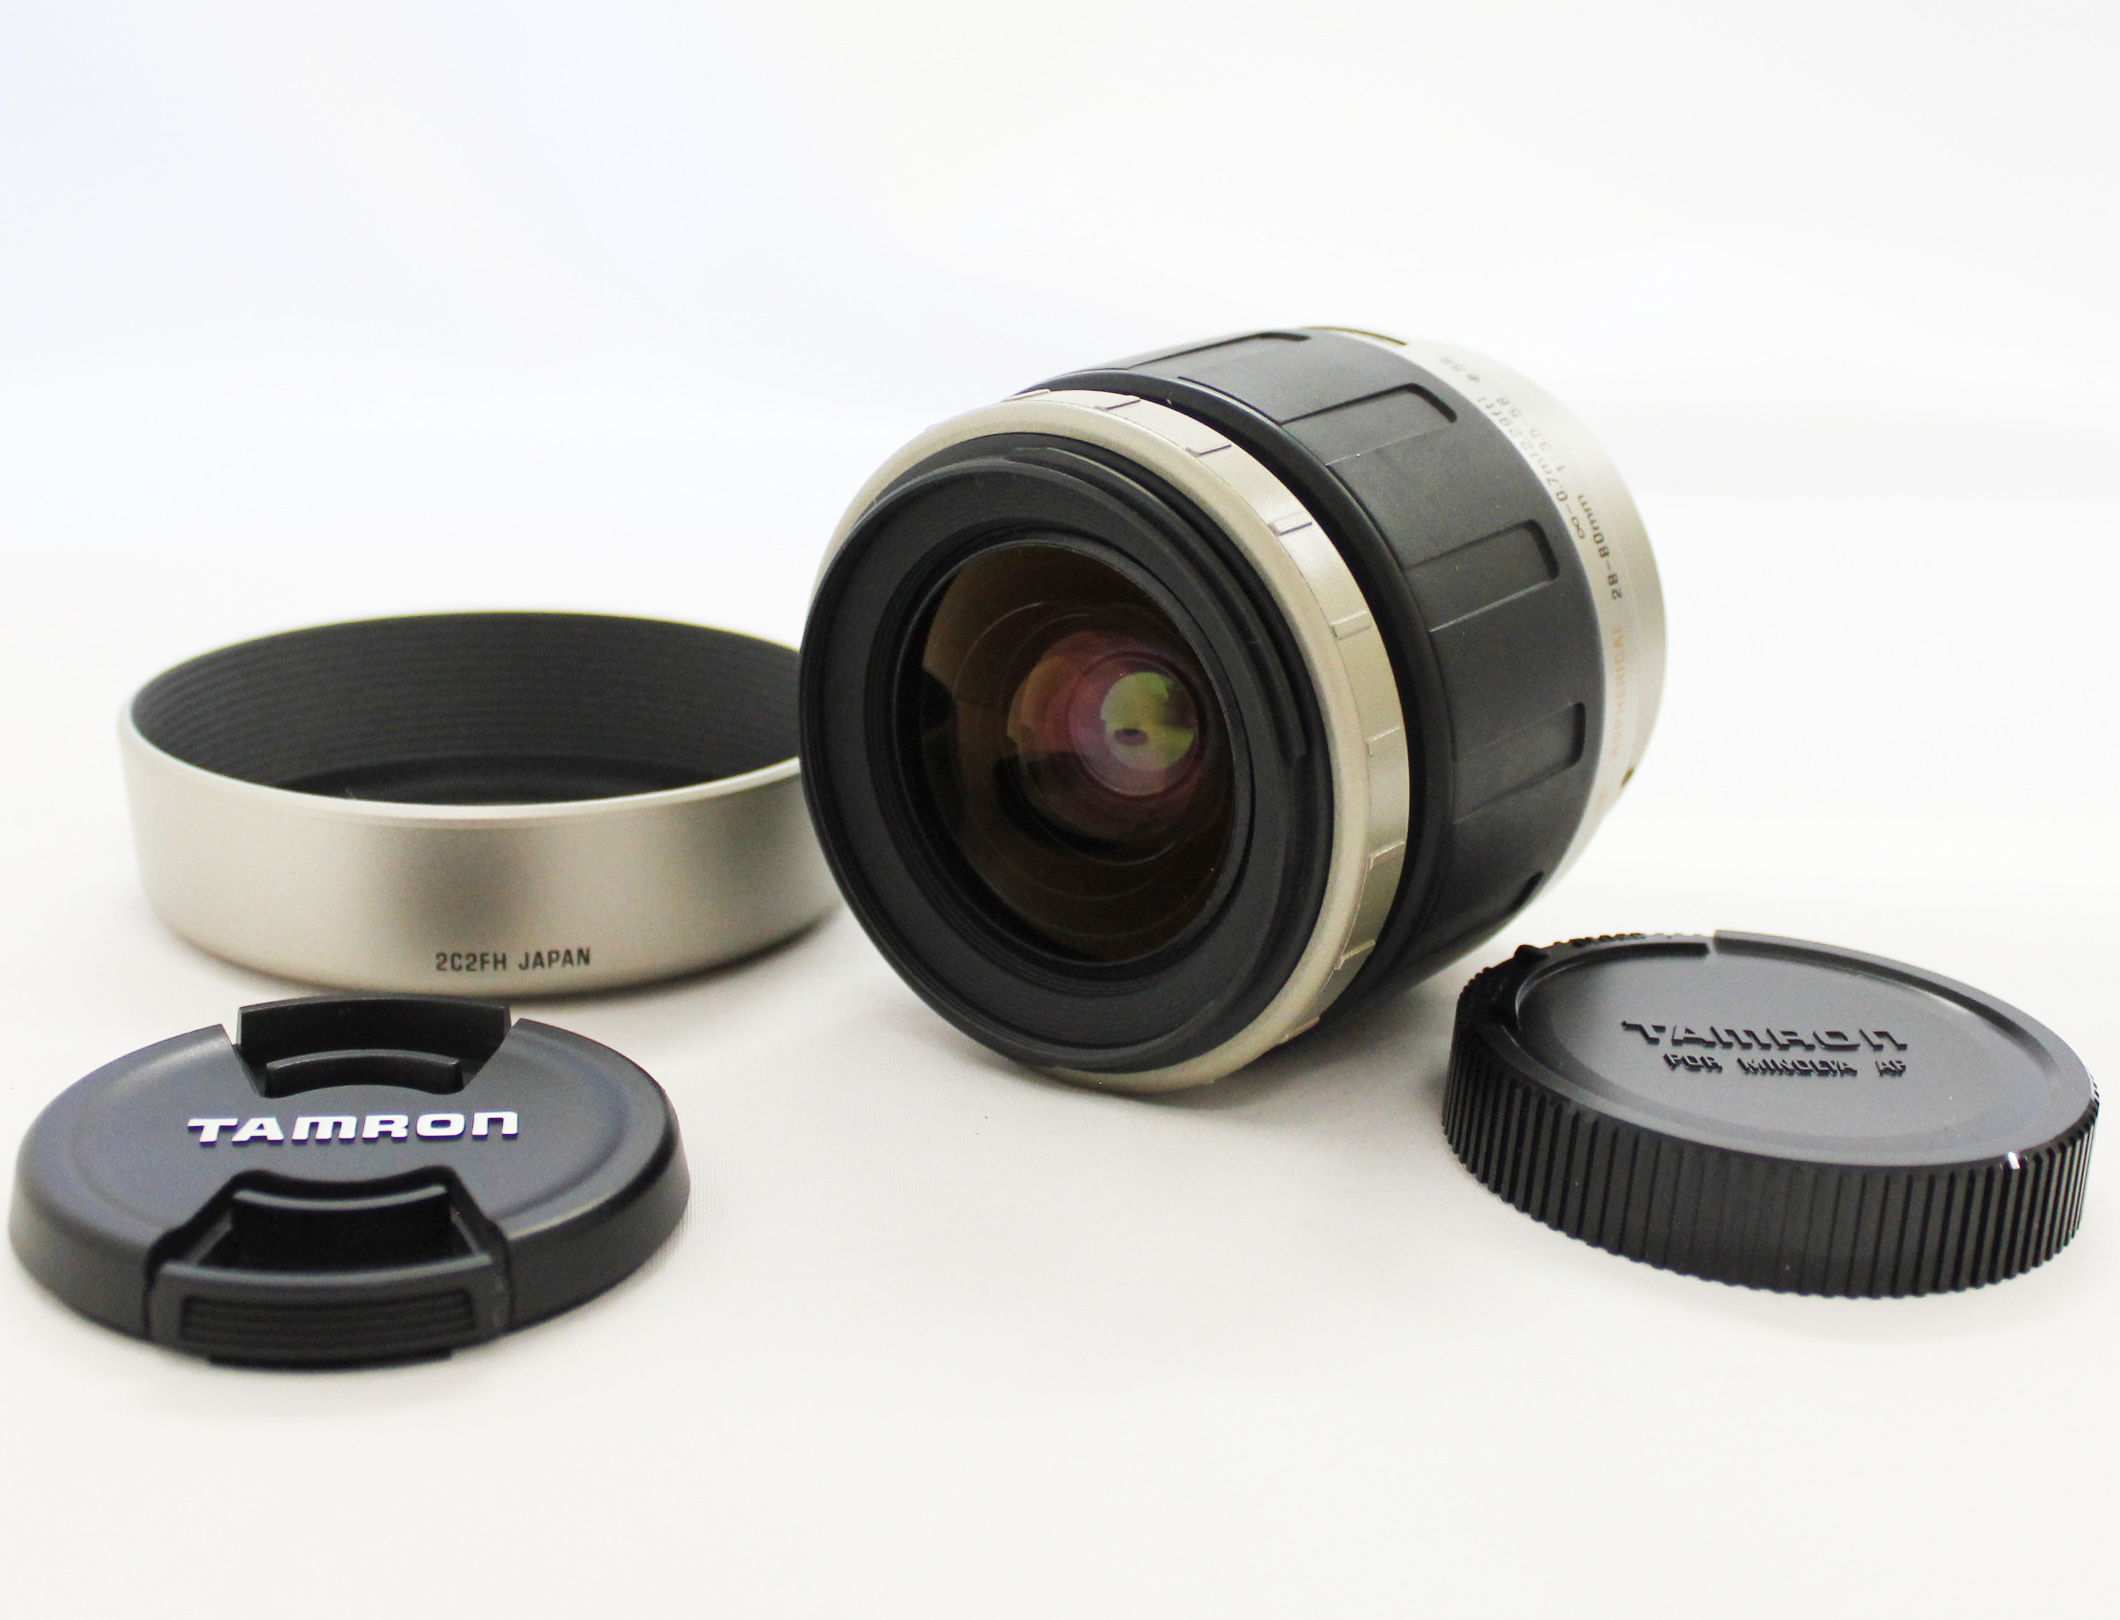 Japan Used Camera Shop | [Unused] Tamron AF 28-80mm F/3.5-5.6 Lens with Hood for Minolta/Sony A Mount from Japan